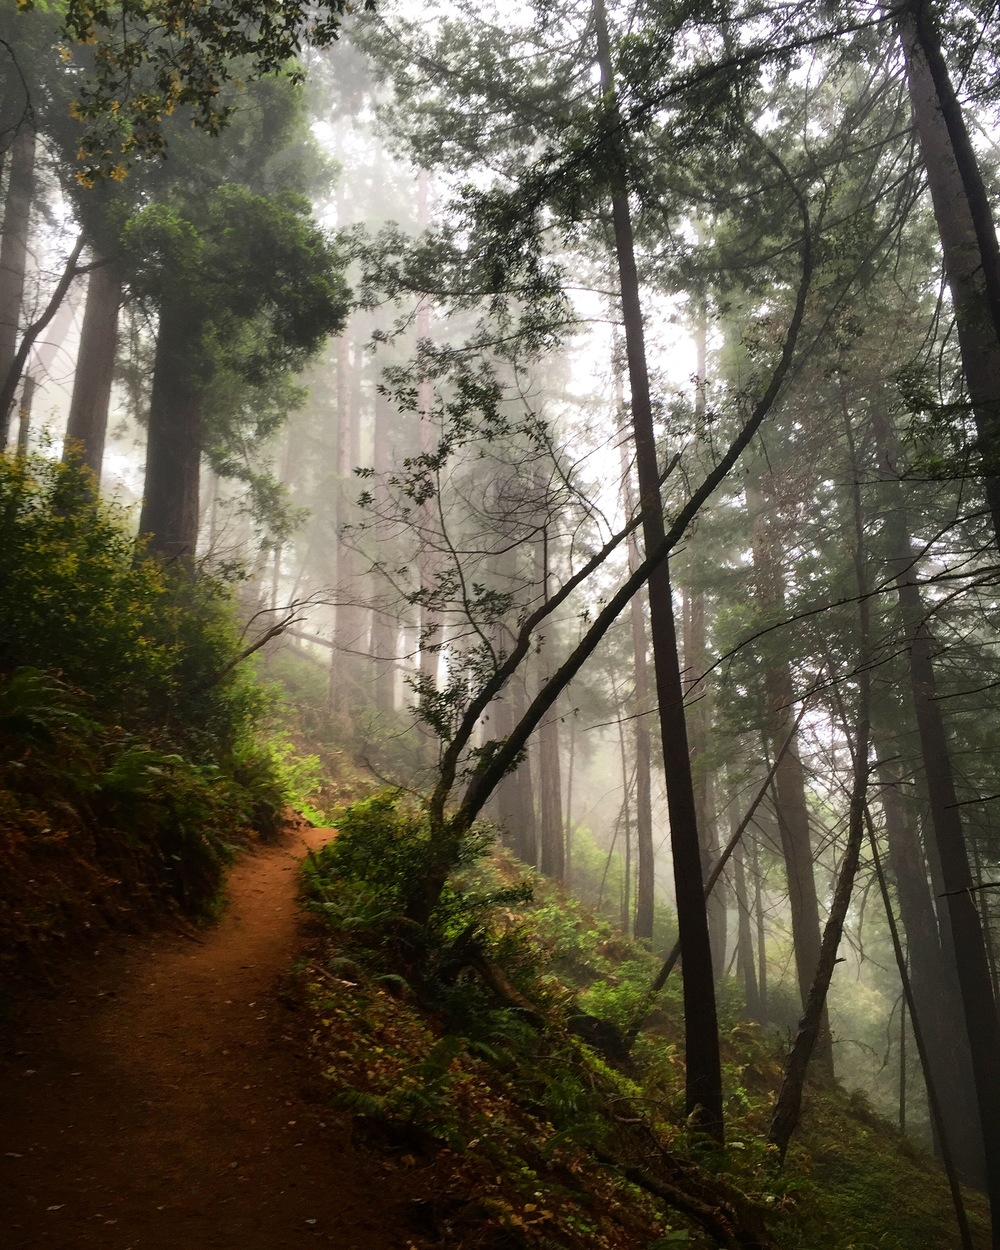 Ewoldsen Trail, Julia Pfeiffer Burns State Park